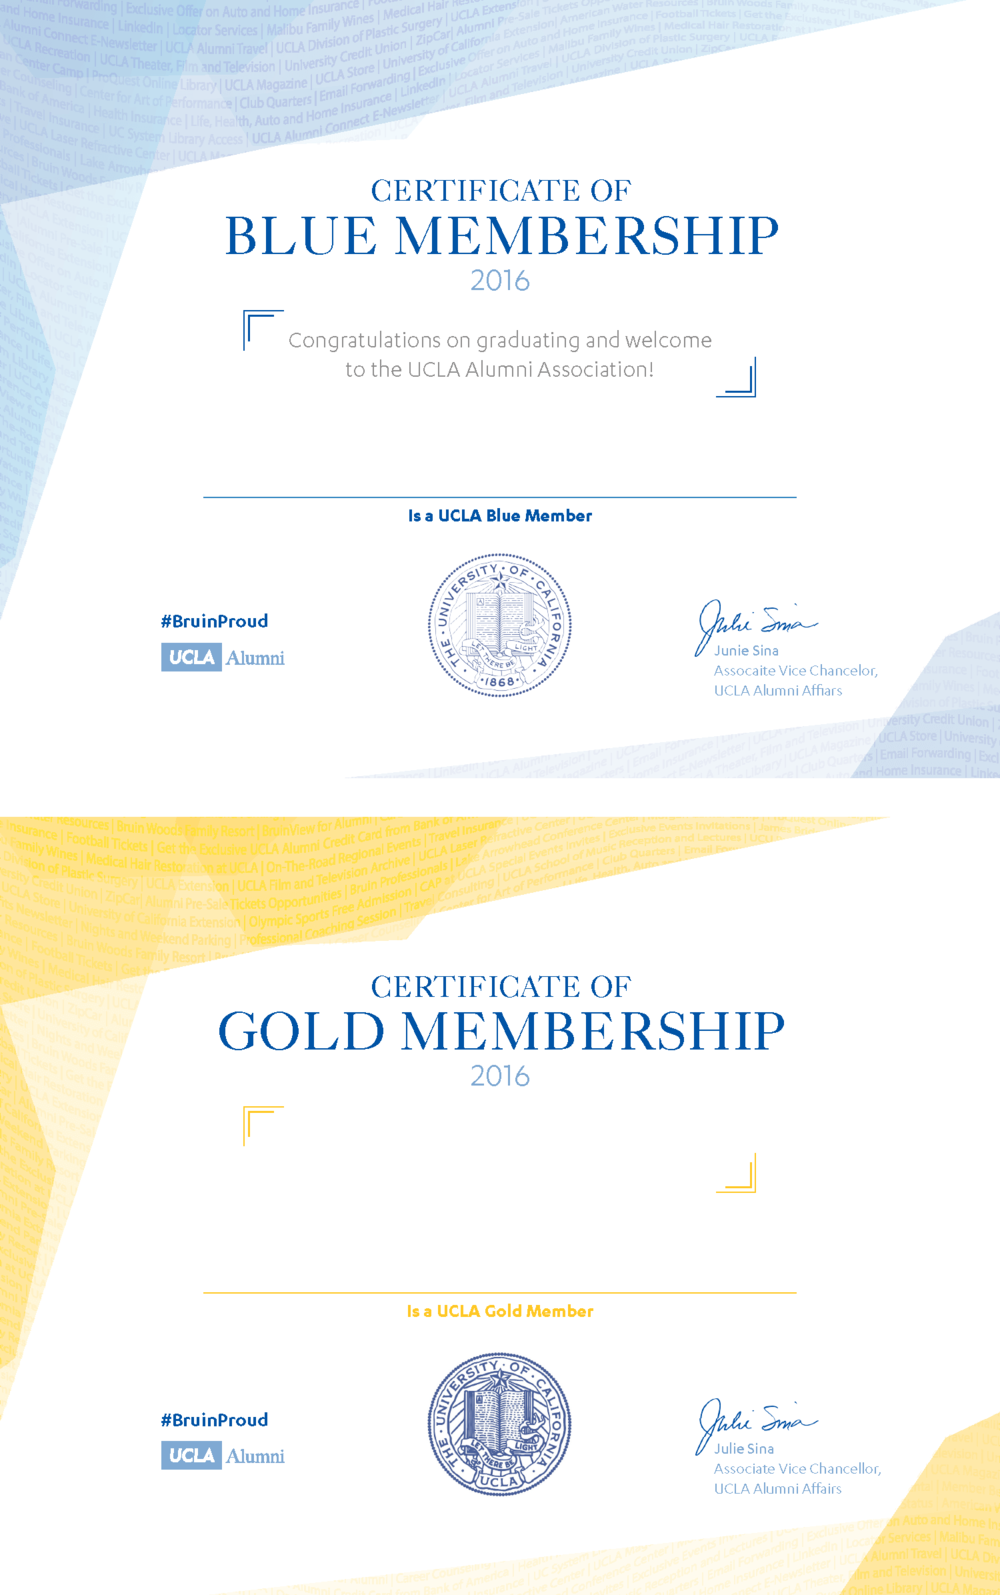 Certificates given upon purchase of UCLA Alumni memberships. The waves in the design are created using descriptions of the benefits that accompany membership.